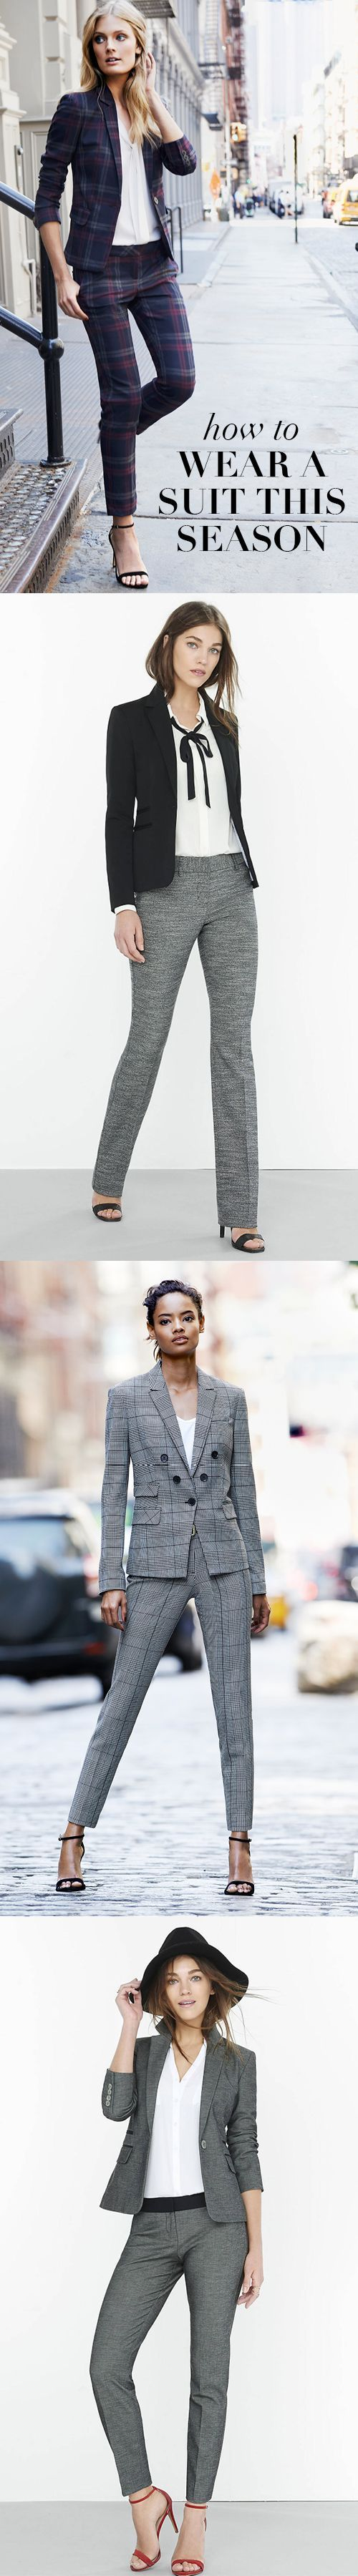 The Express suit shop has perfectly chic looks for your 9-to-5 life. The matching print jackets and ankle pants can be worn with solid pieces or the new tie-neck blouses for days when a full suit doesn't qualify for the job. The jackets have a silky soft lining so they're warm during the city commute.